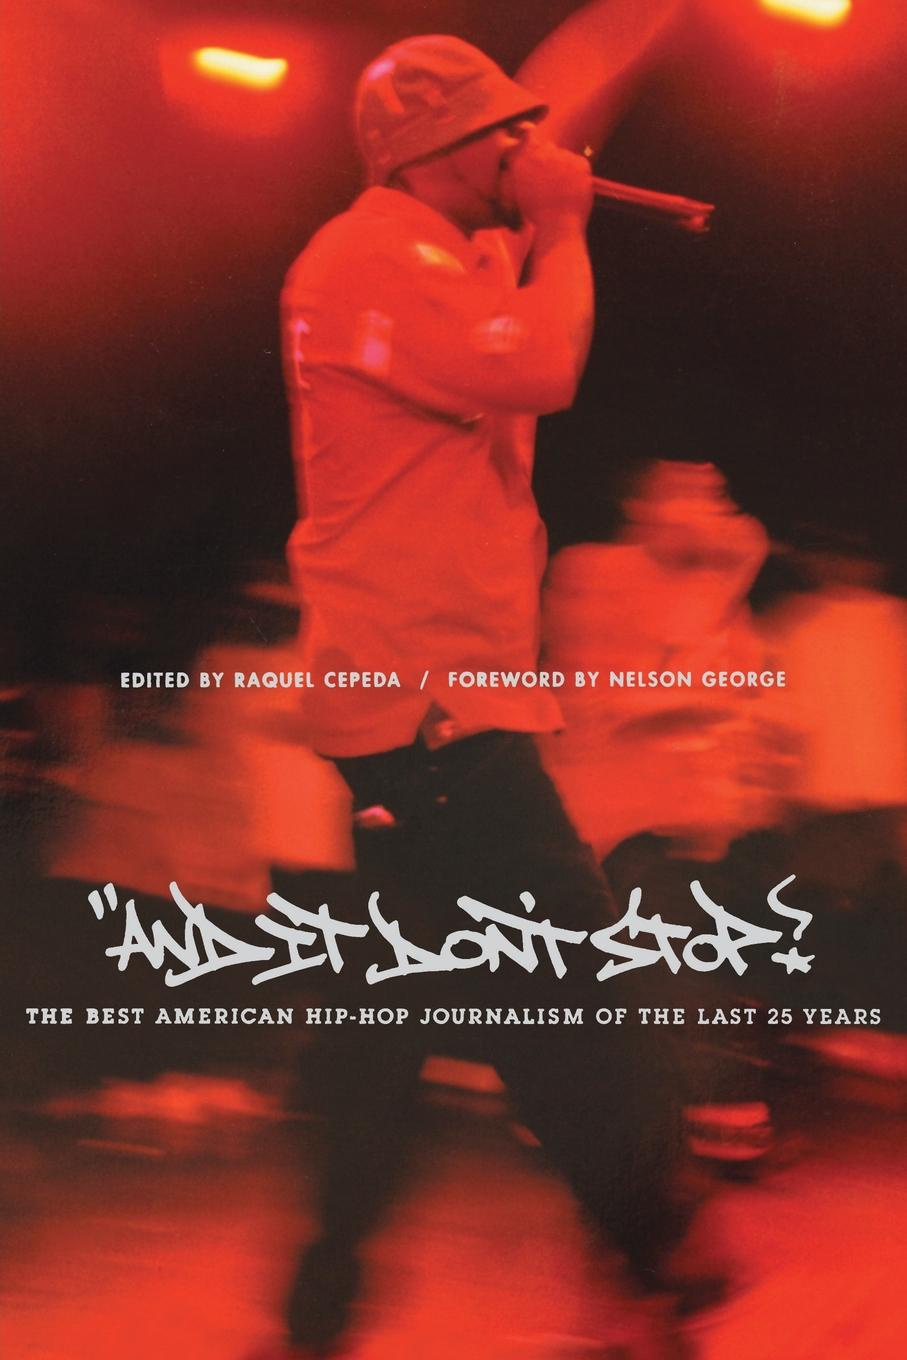 And It Don't Stop. The Best American Hip-Hop Journalism of the Last 25 Years